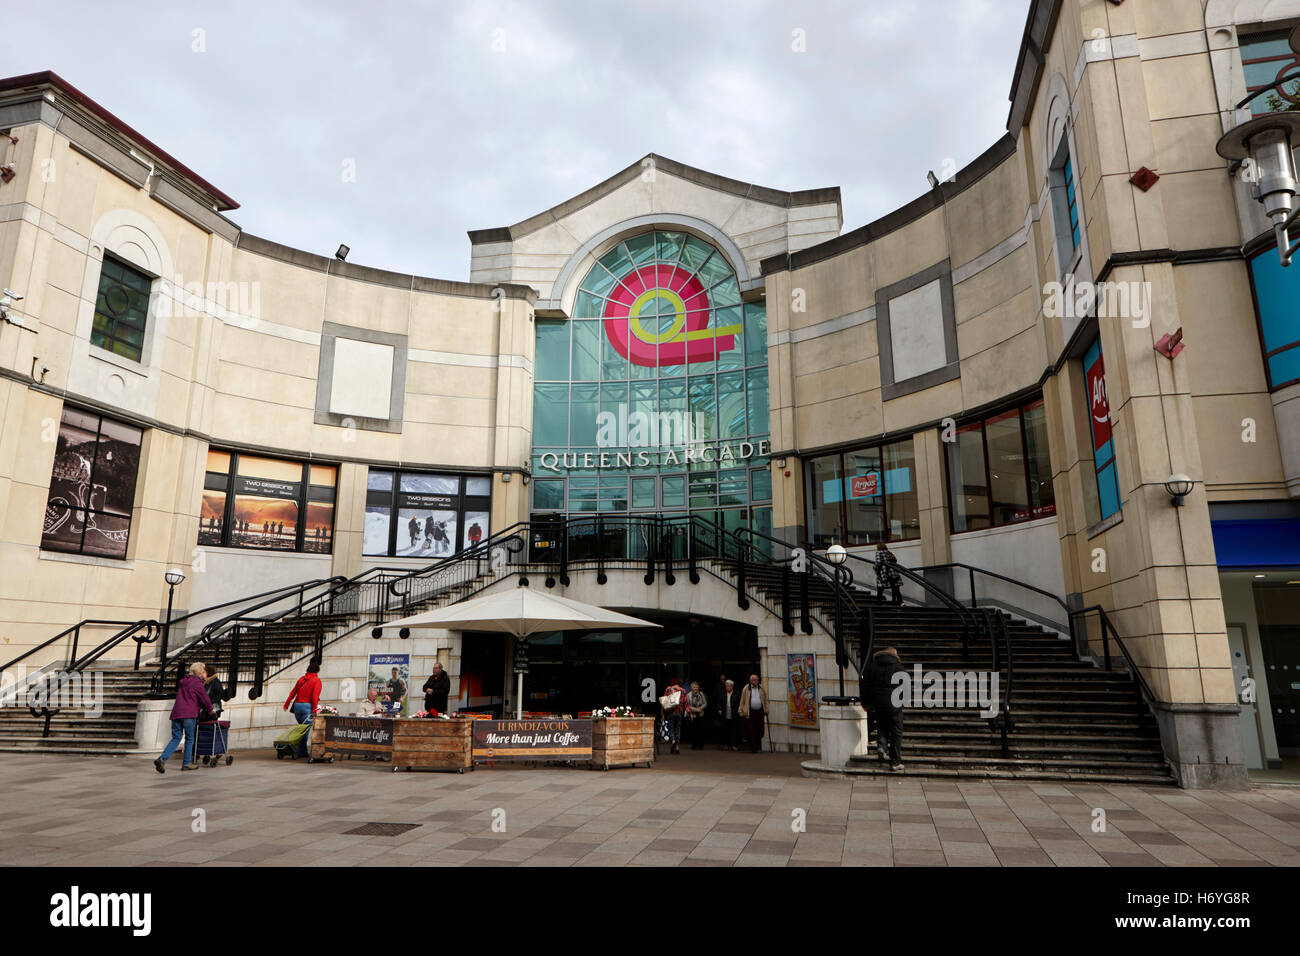 queens arcade shopping centre Cardiff Wales United Kingdom - Stock Image